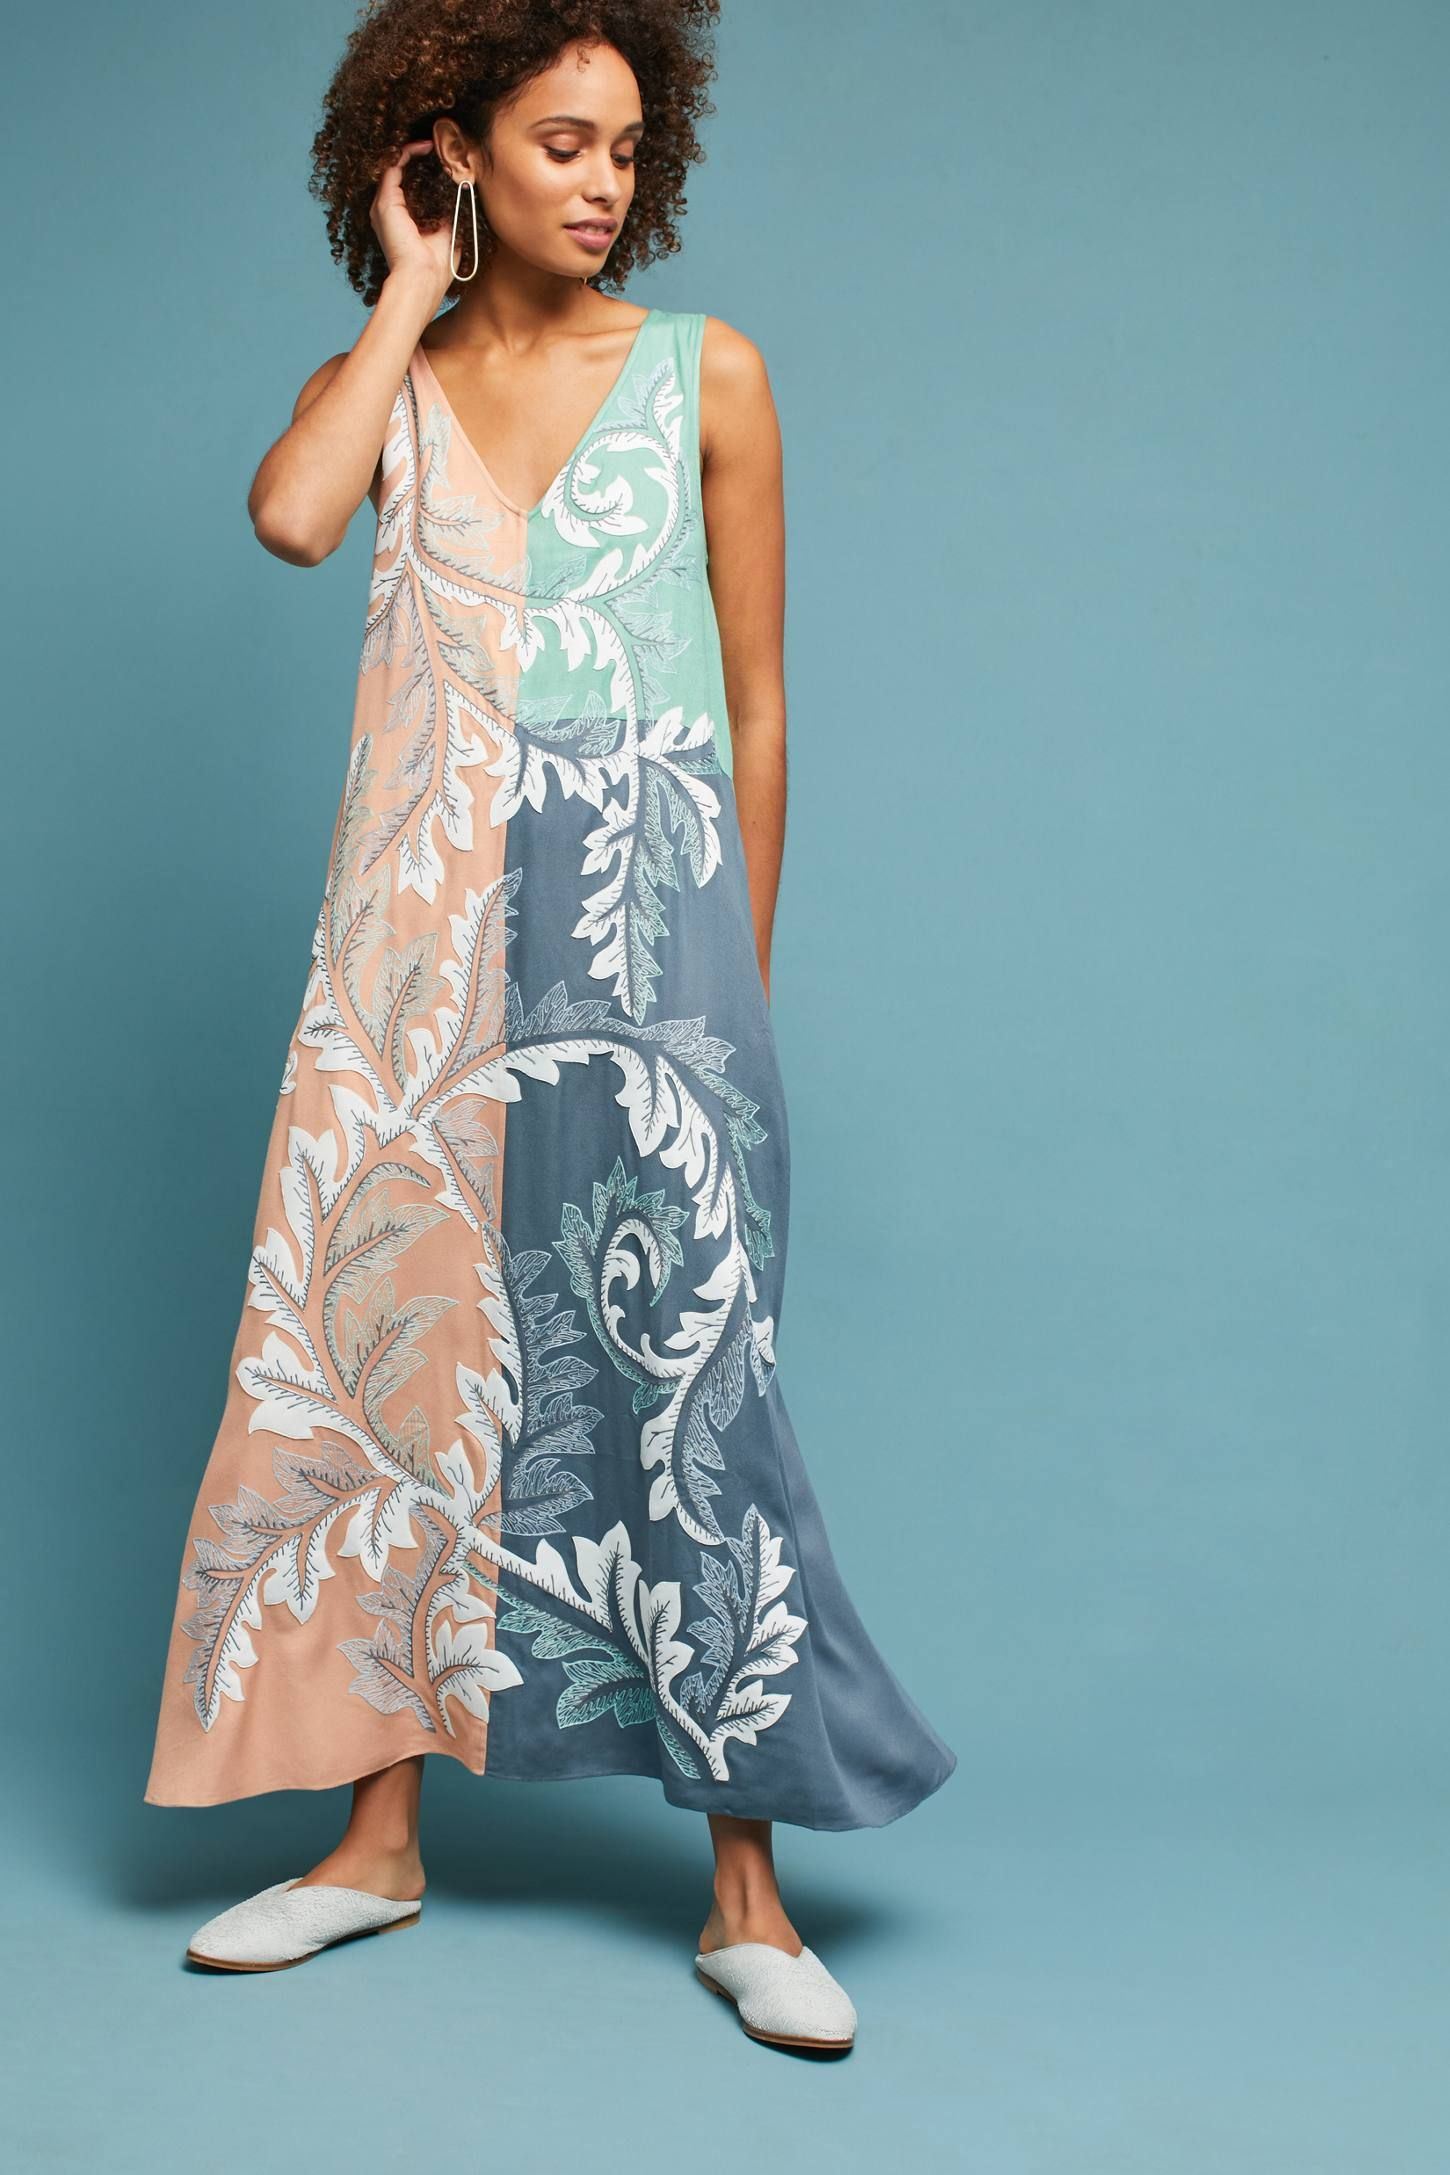 1122d491d6a11 Shop the Embroidered Colorblocked Maxi Dress and more Anthropologie at  Anthropologie today. Read customer reviews, discover product details and  more.